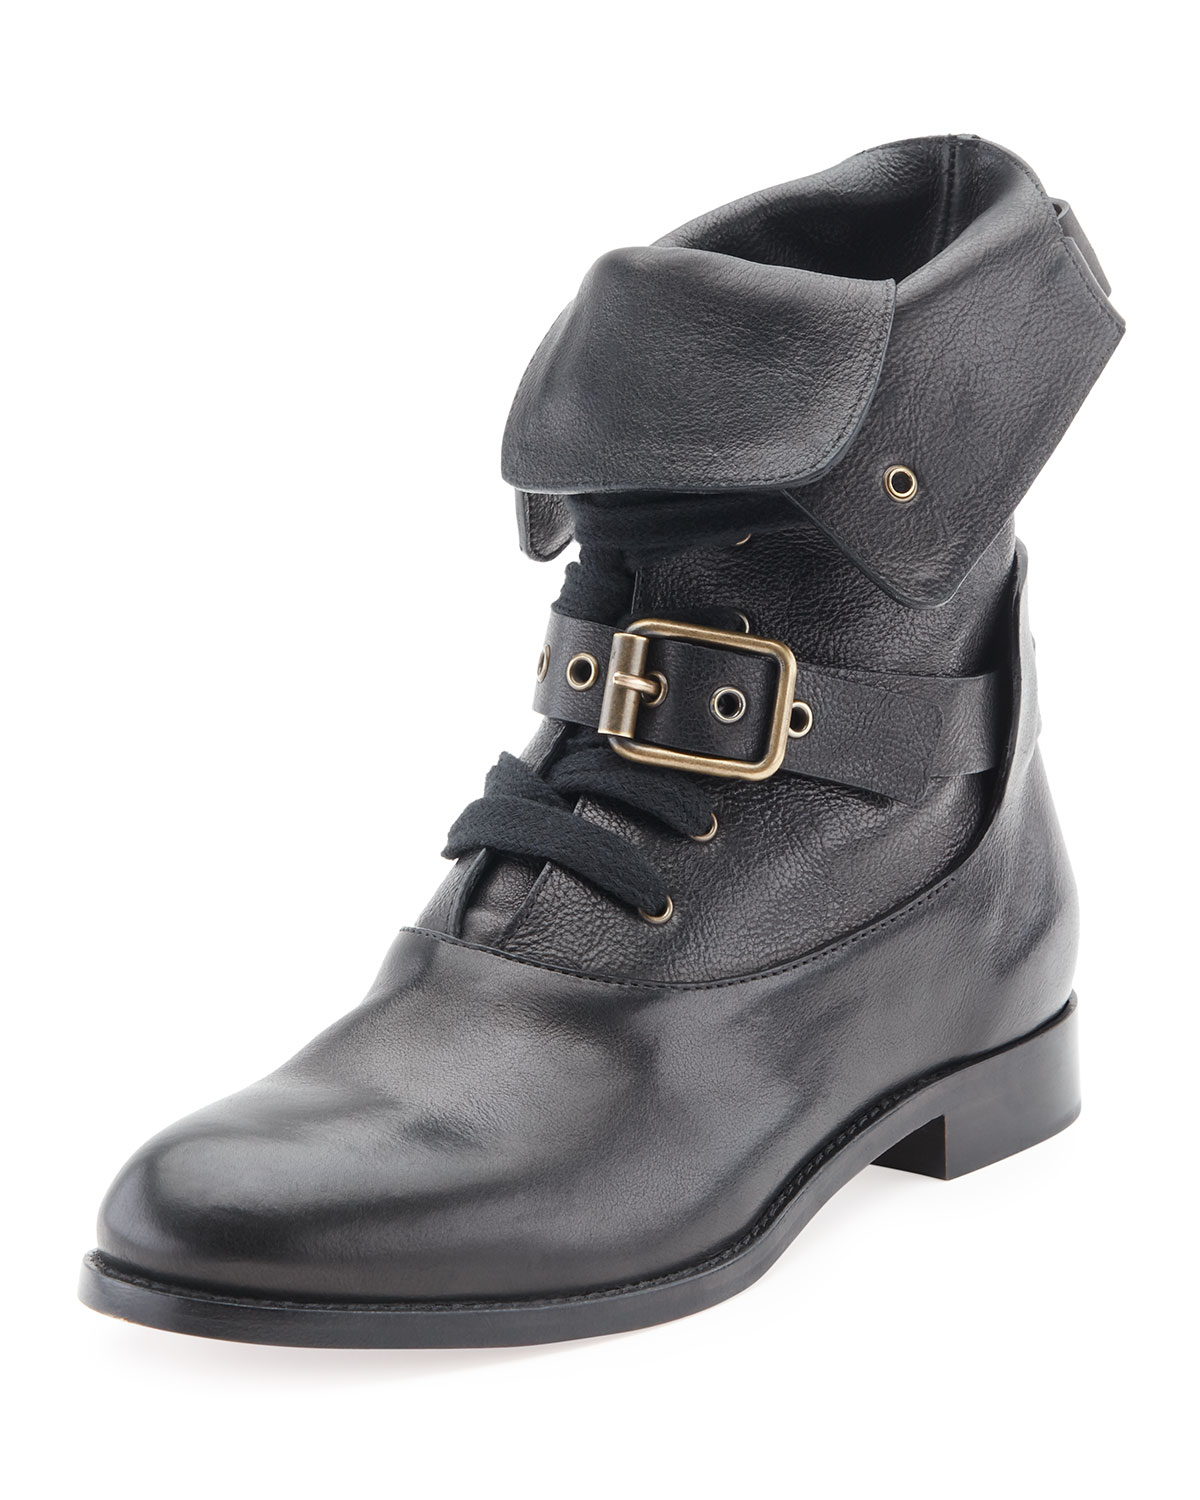 c151e0c4 Otto Lace-Up Buckle Ankle Boot, Black